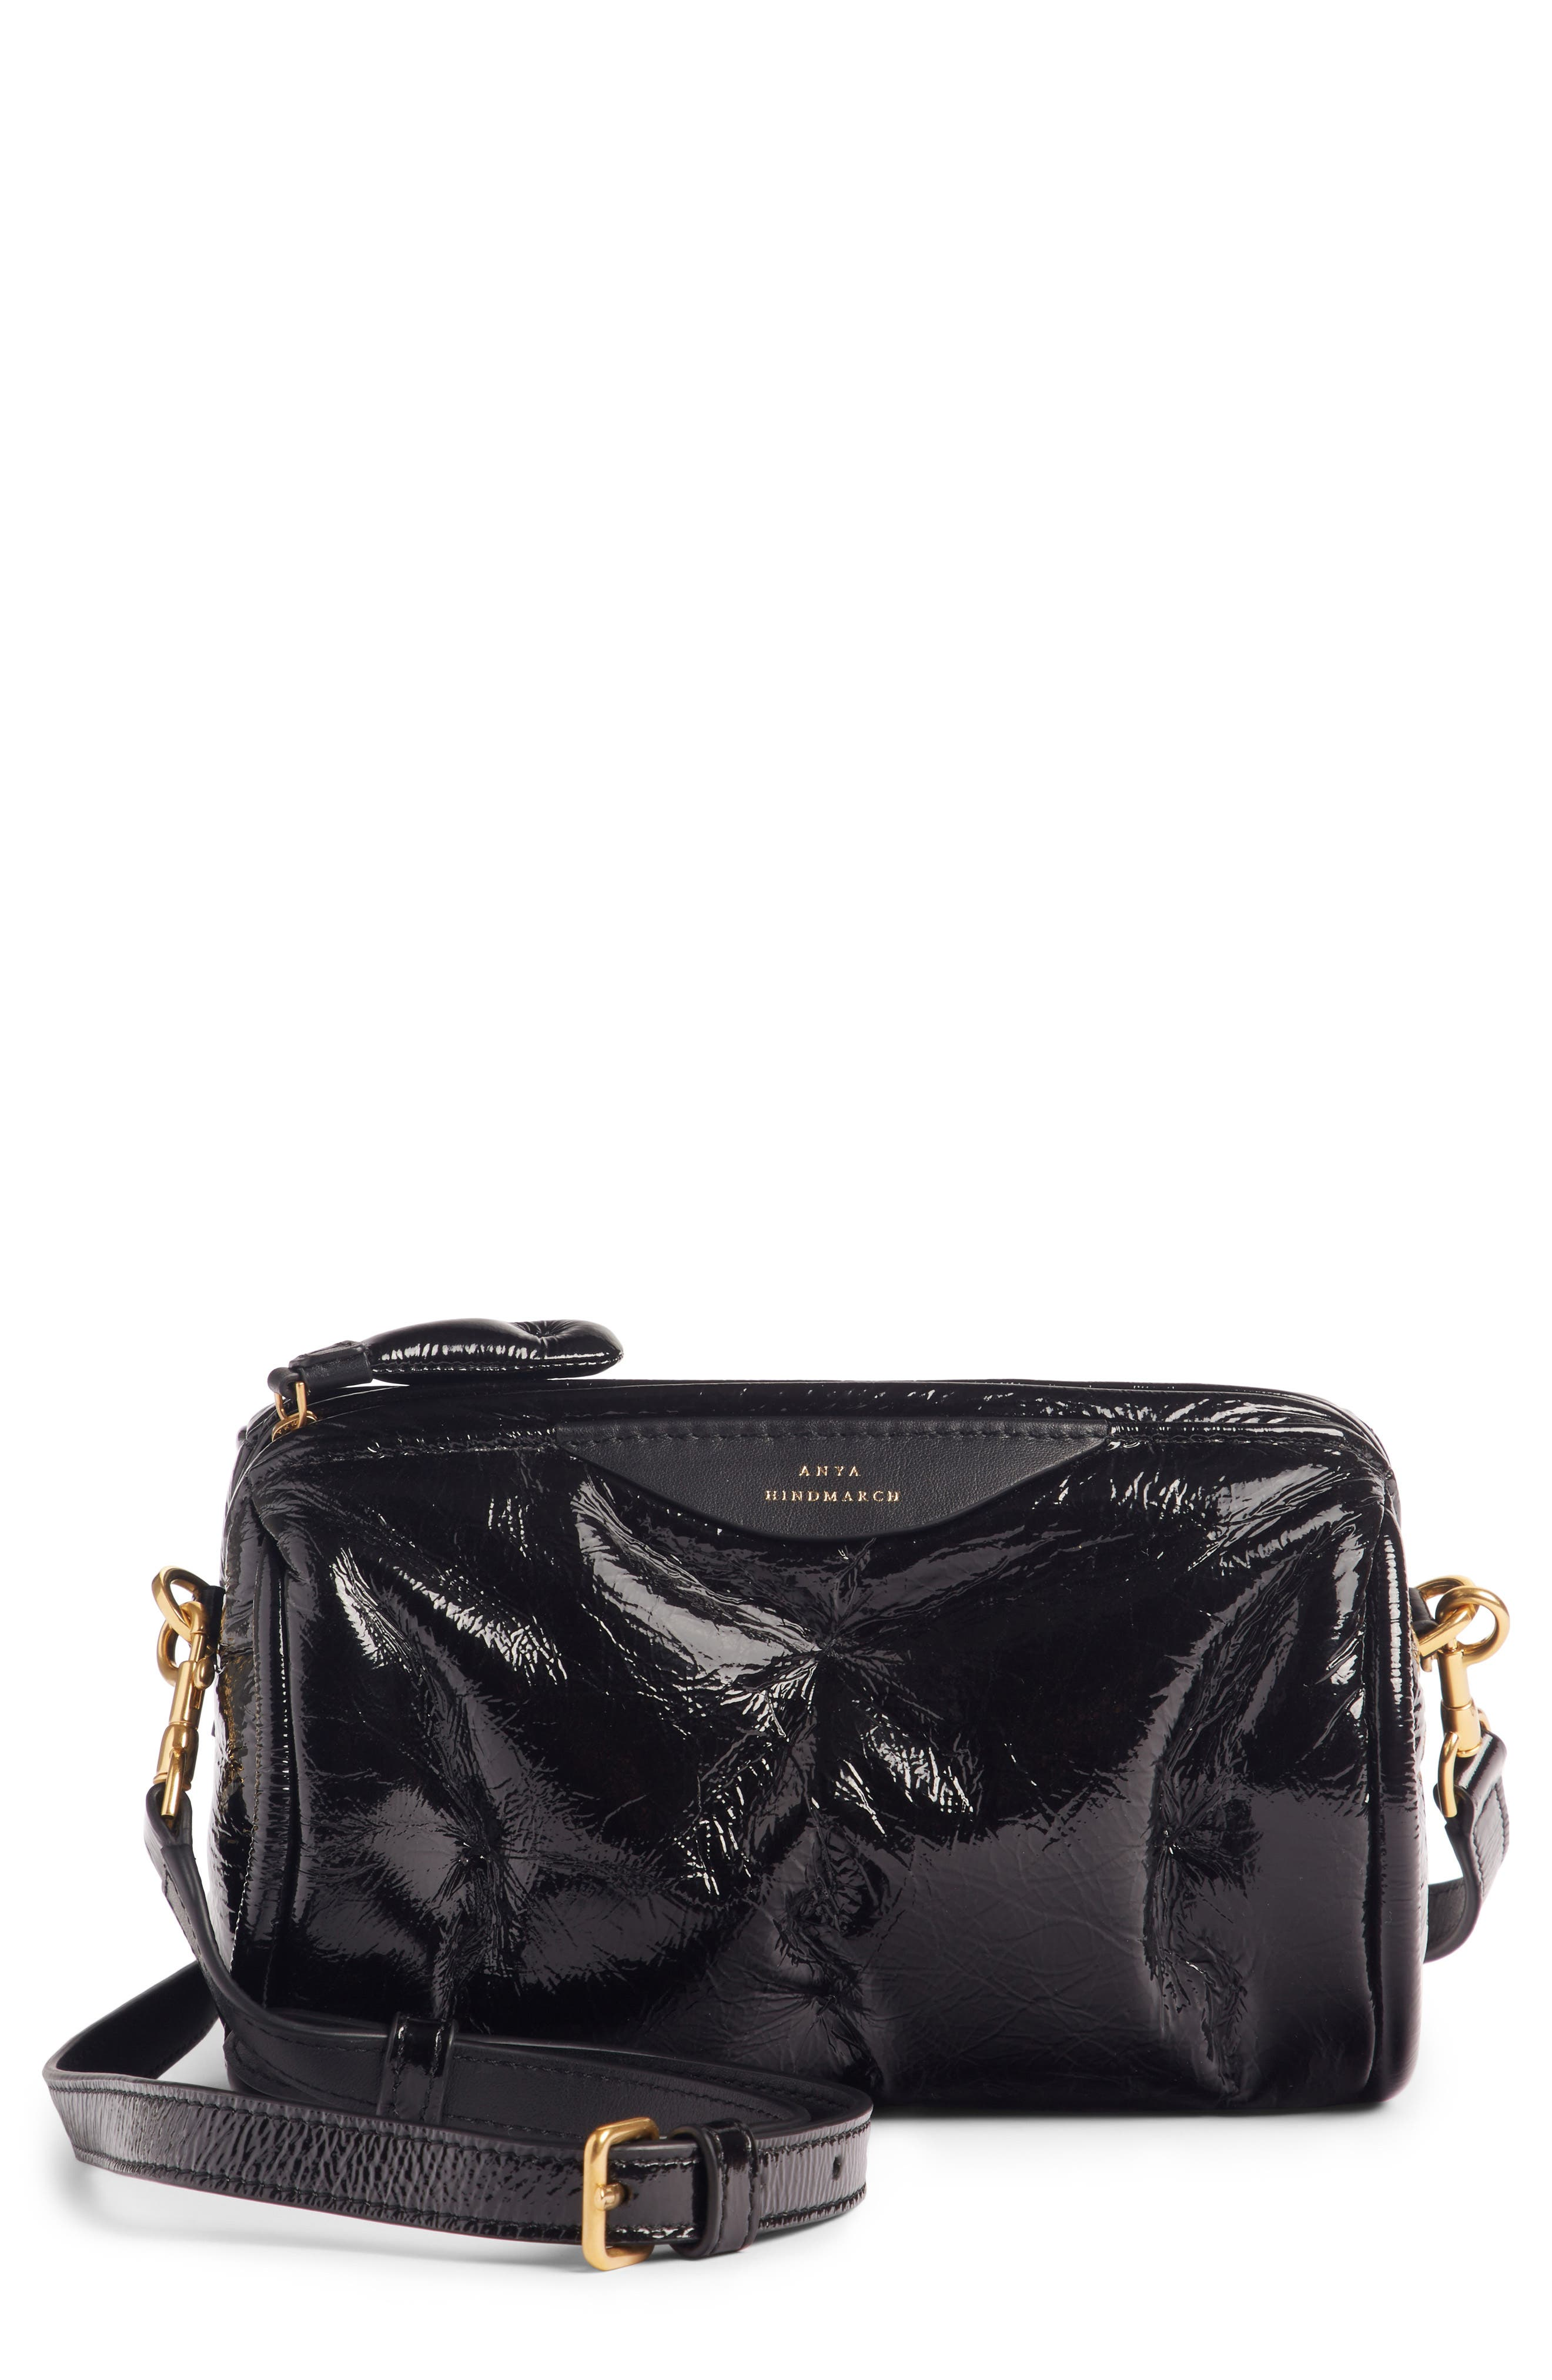 Chubby Barrel Patent Leather Satchel,                         Main,                         color, 001